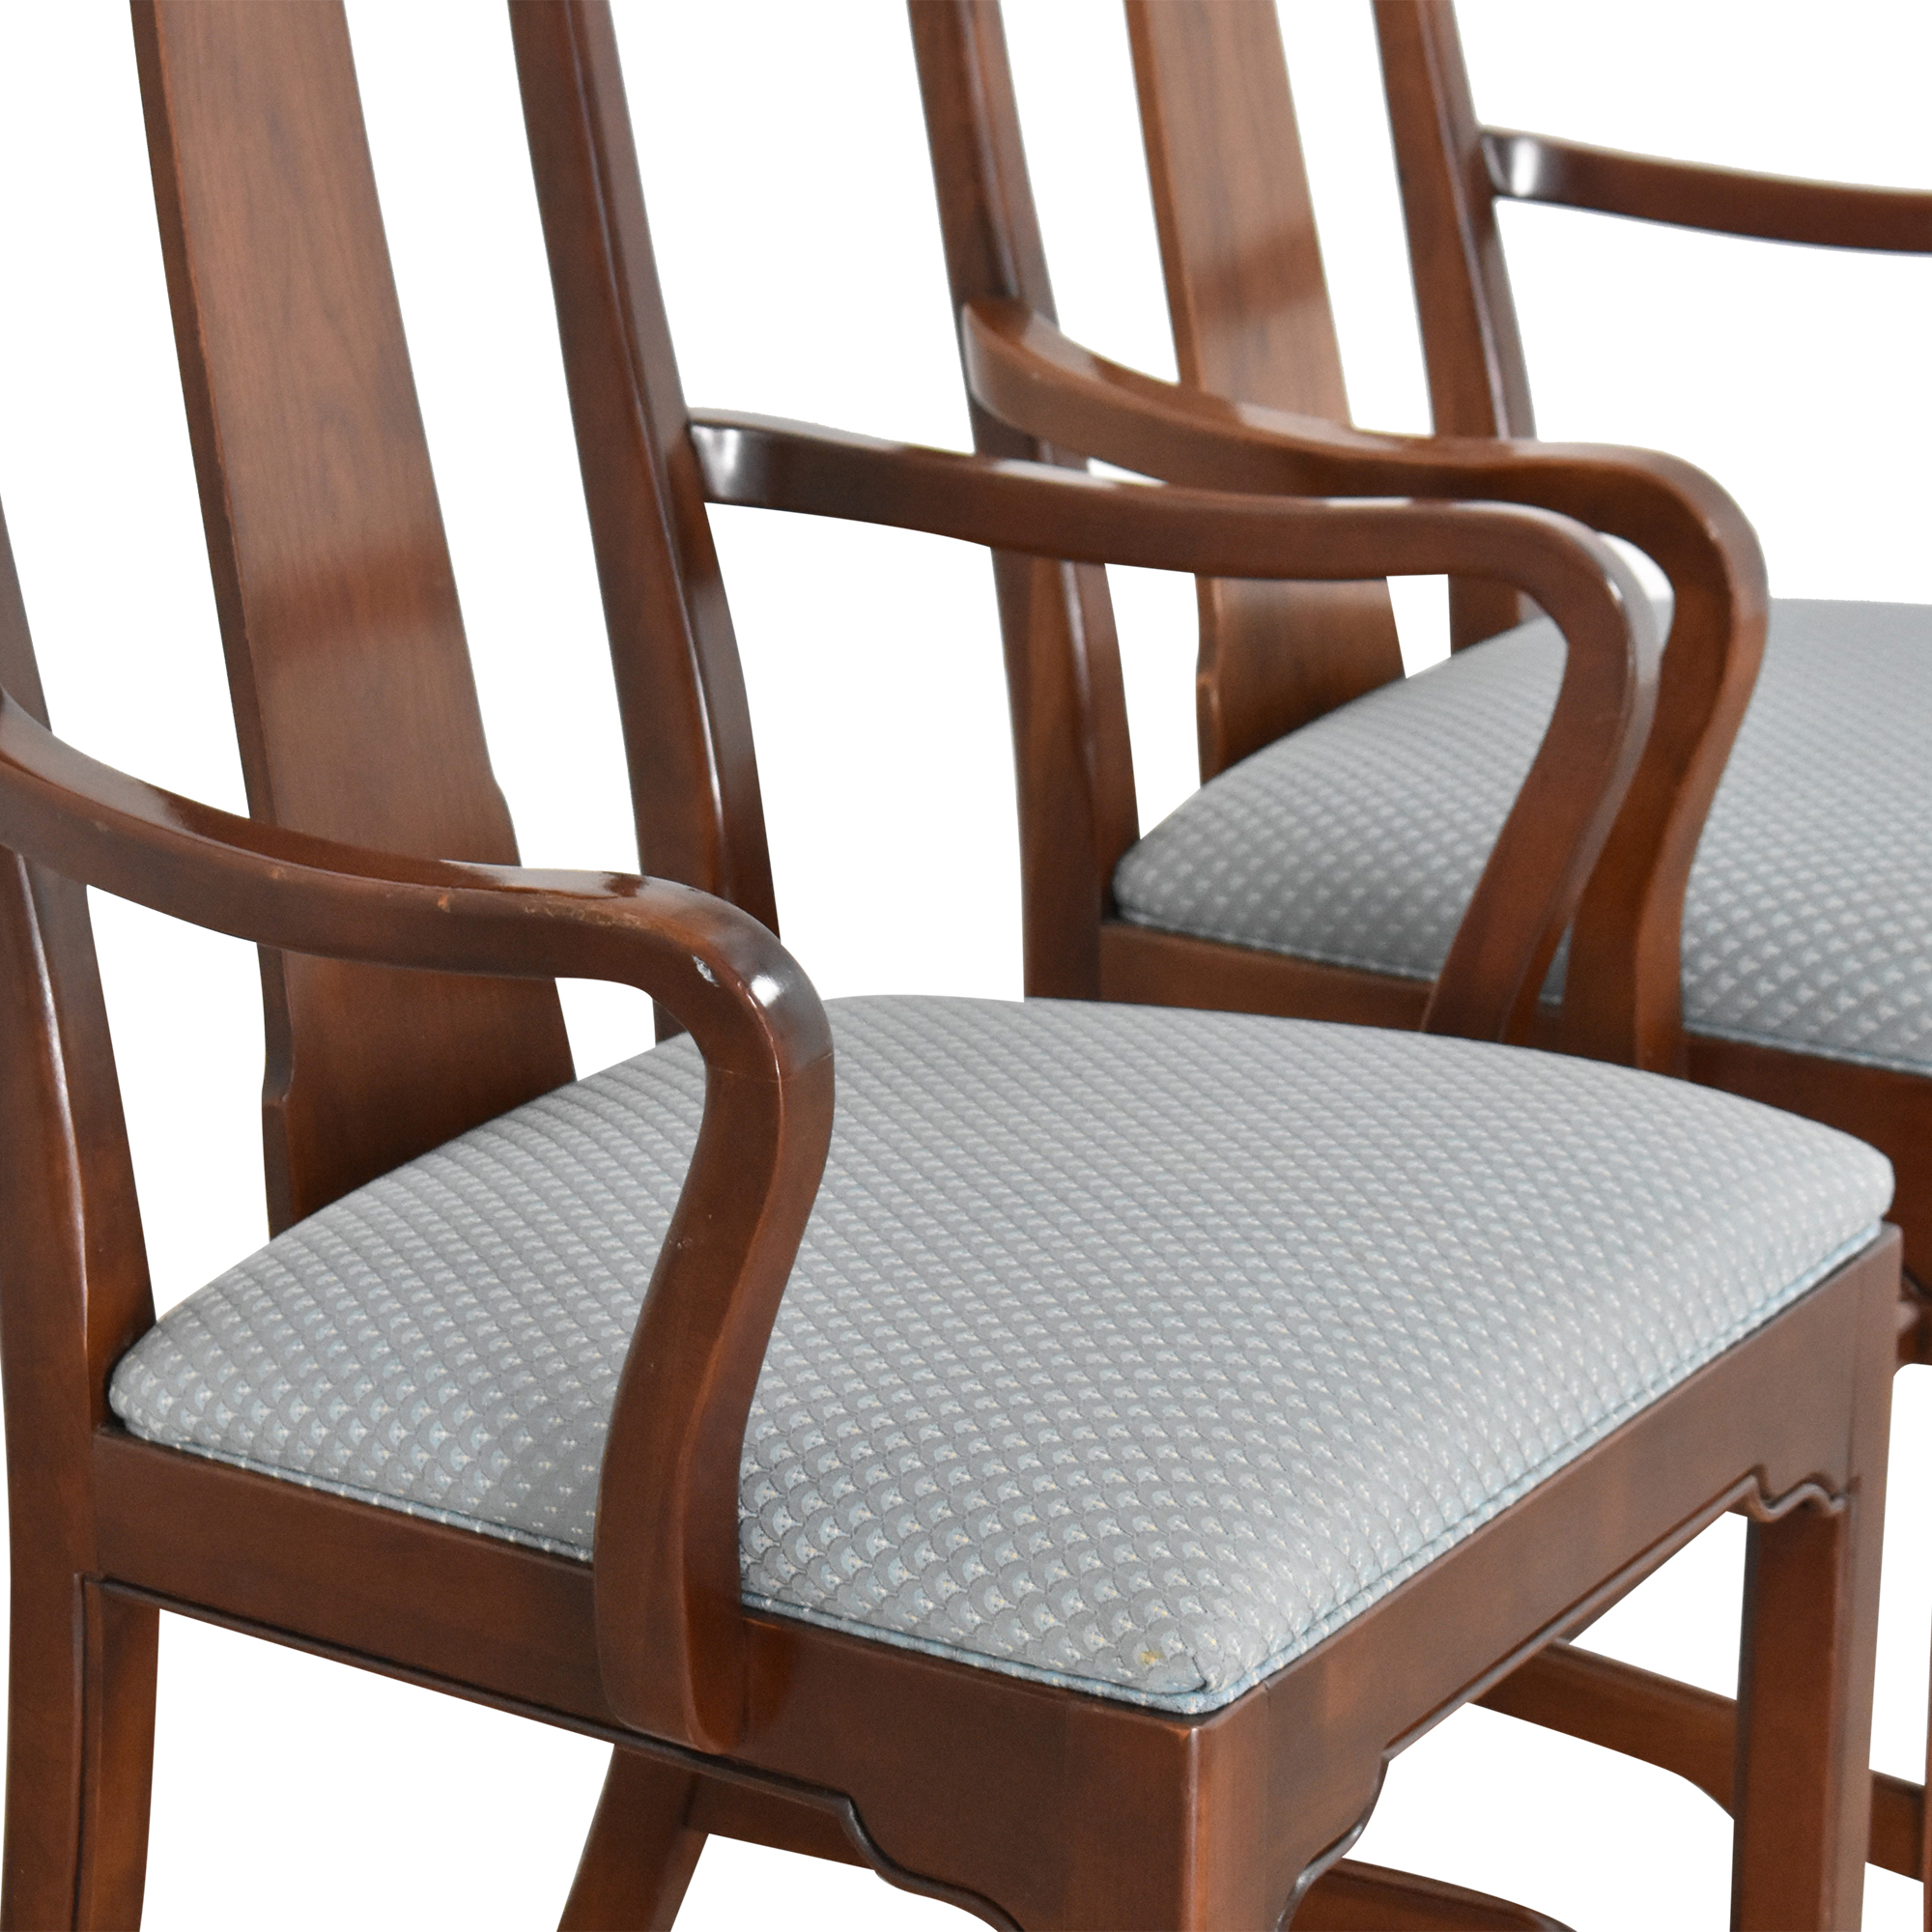 Ethan Allen Ethan Allen Canova Campaign Dining Arm Chairs Chairs